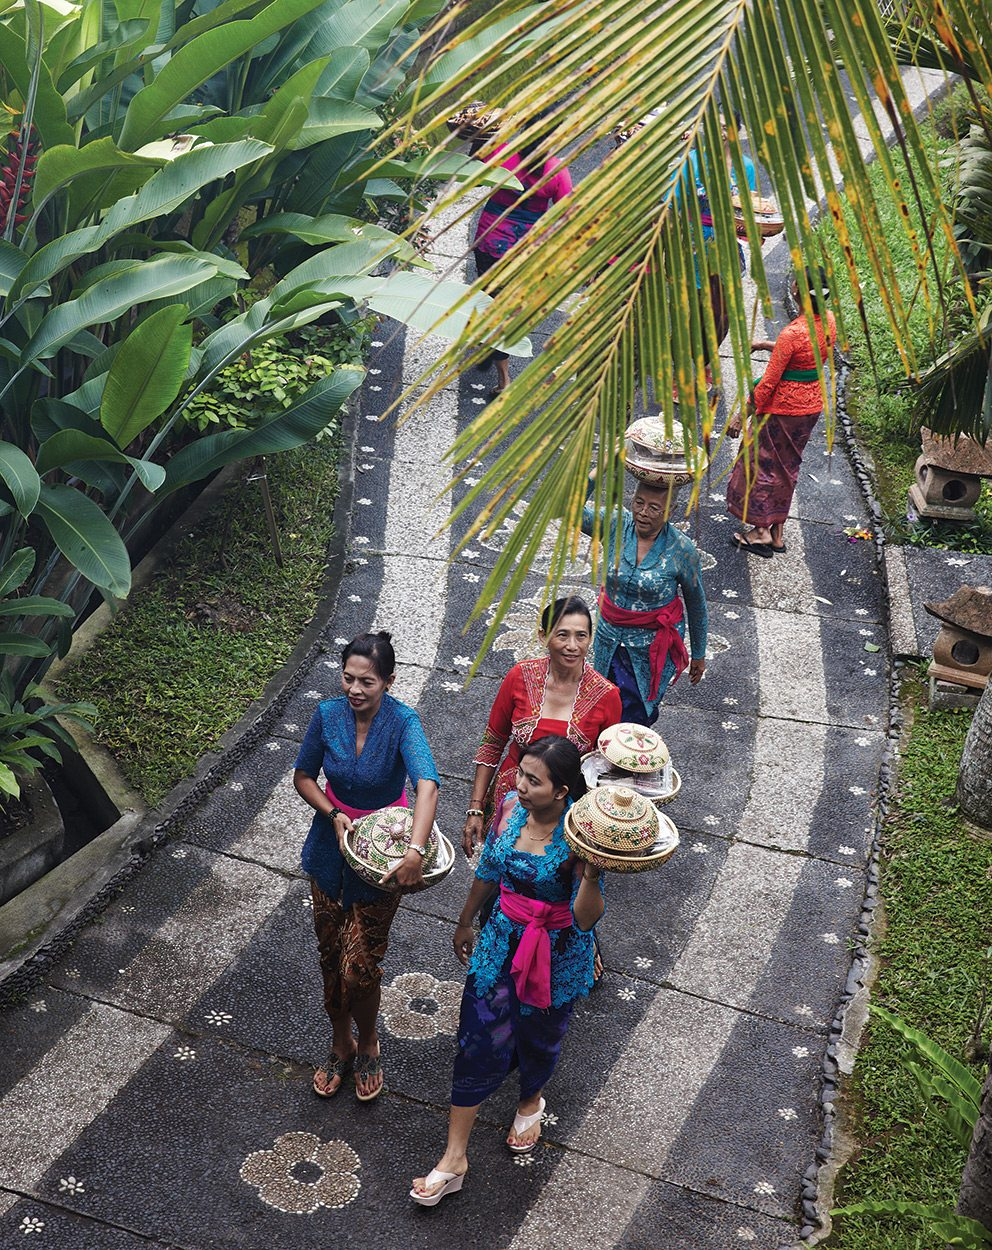 Preparation for a Balinese Wedding at Ubud Village